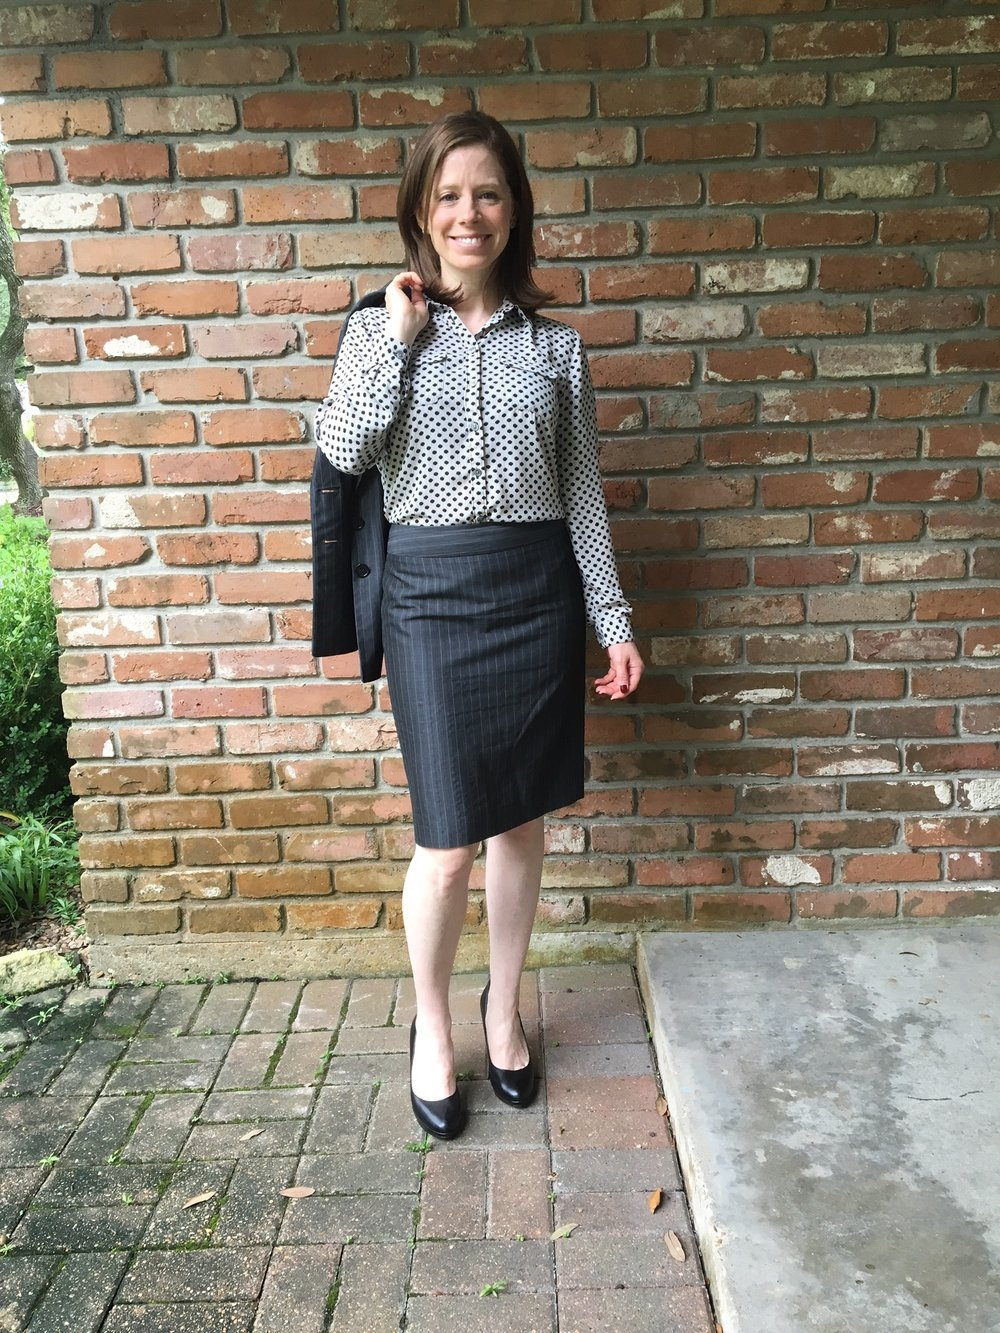 Polka dots with pinstripes? Now we're really getting crazy! I was not pairing this blouse with skirts; only pants. Another win for Emily.